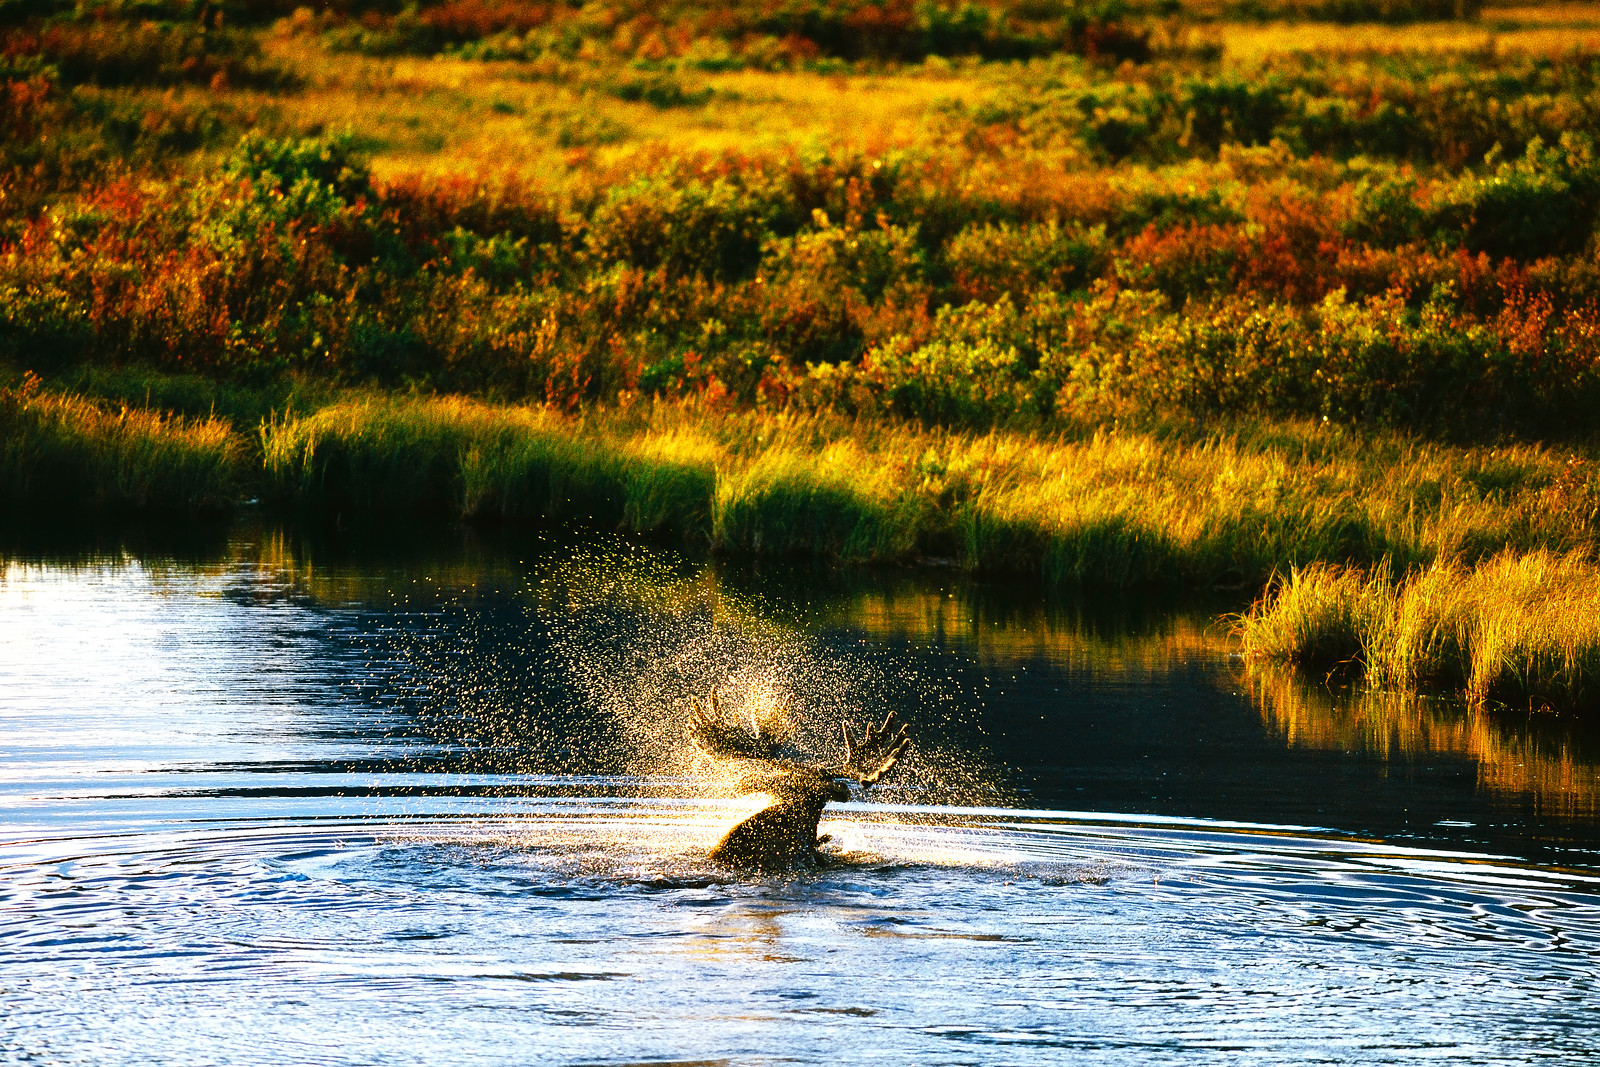 A bull moose swims across a small pond in autumn. As he shakes his head he sends hundreds of water drops flying. Photo taken near the Snake River, Yukon Territory, Canada.